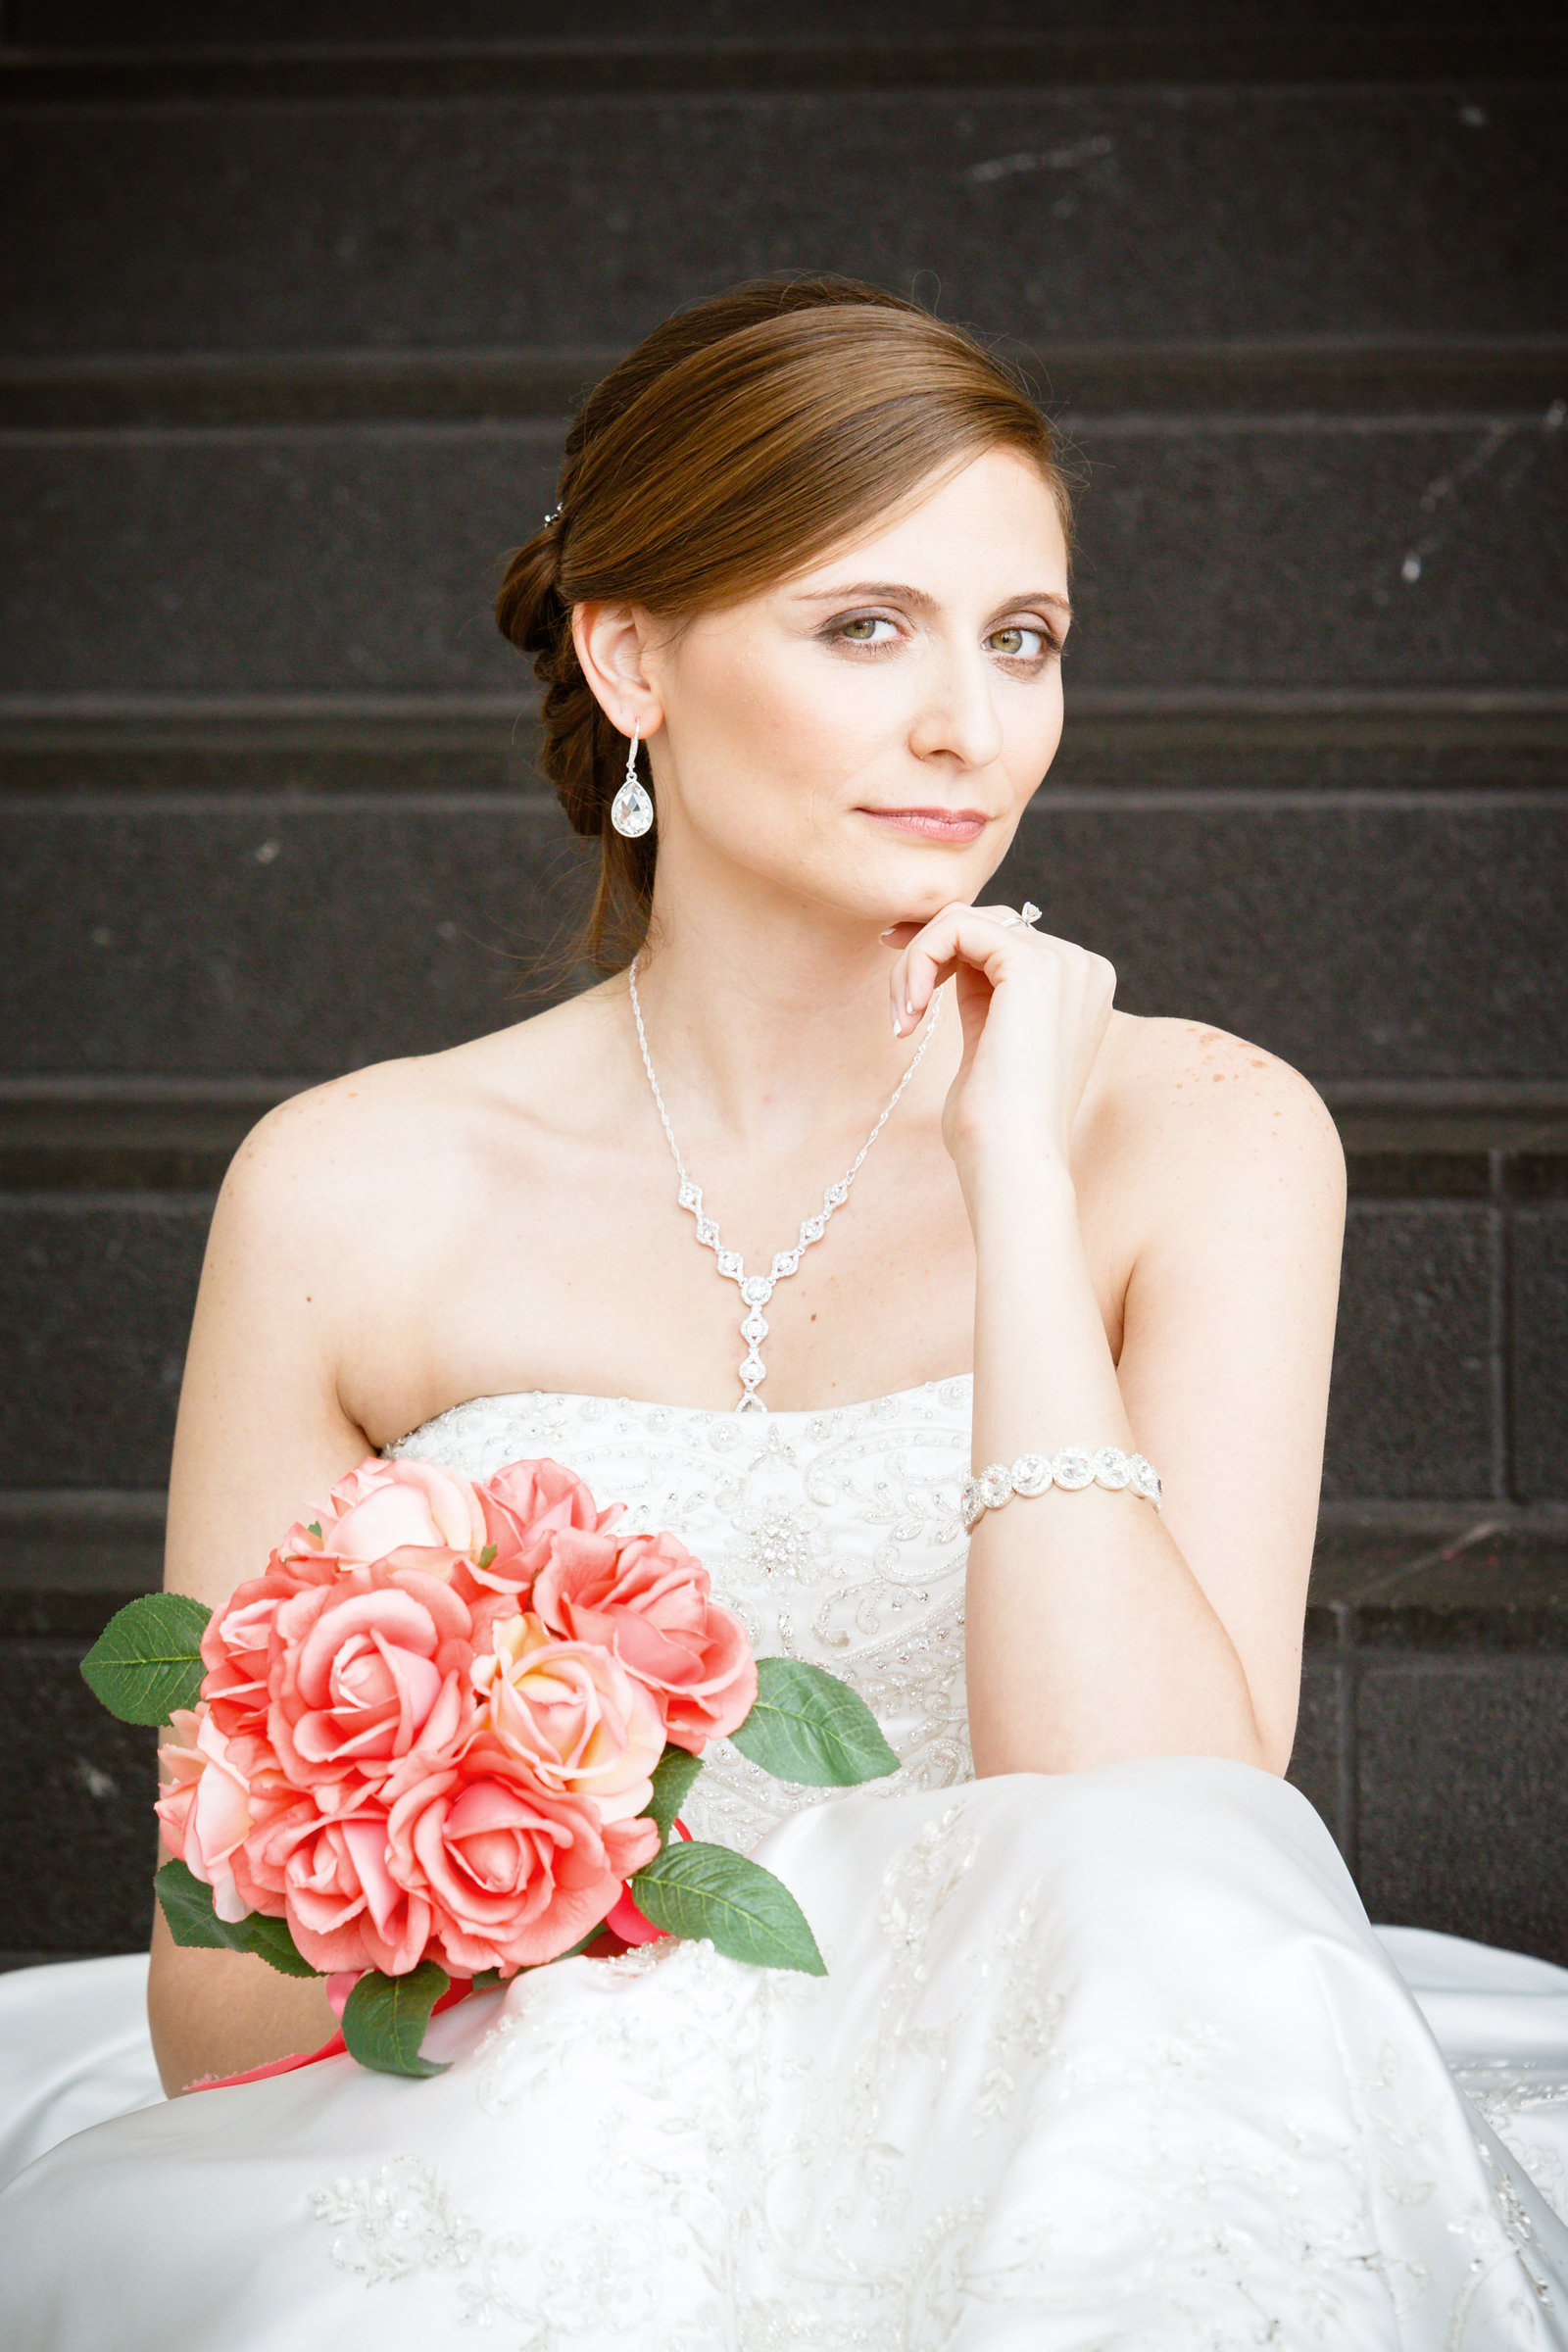 Stephanie Ferro bridal photo at The Battle House hotel in Mobile, Alabama.